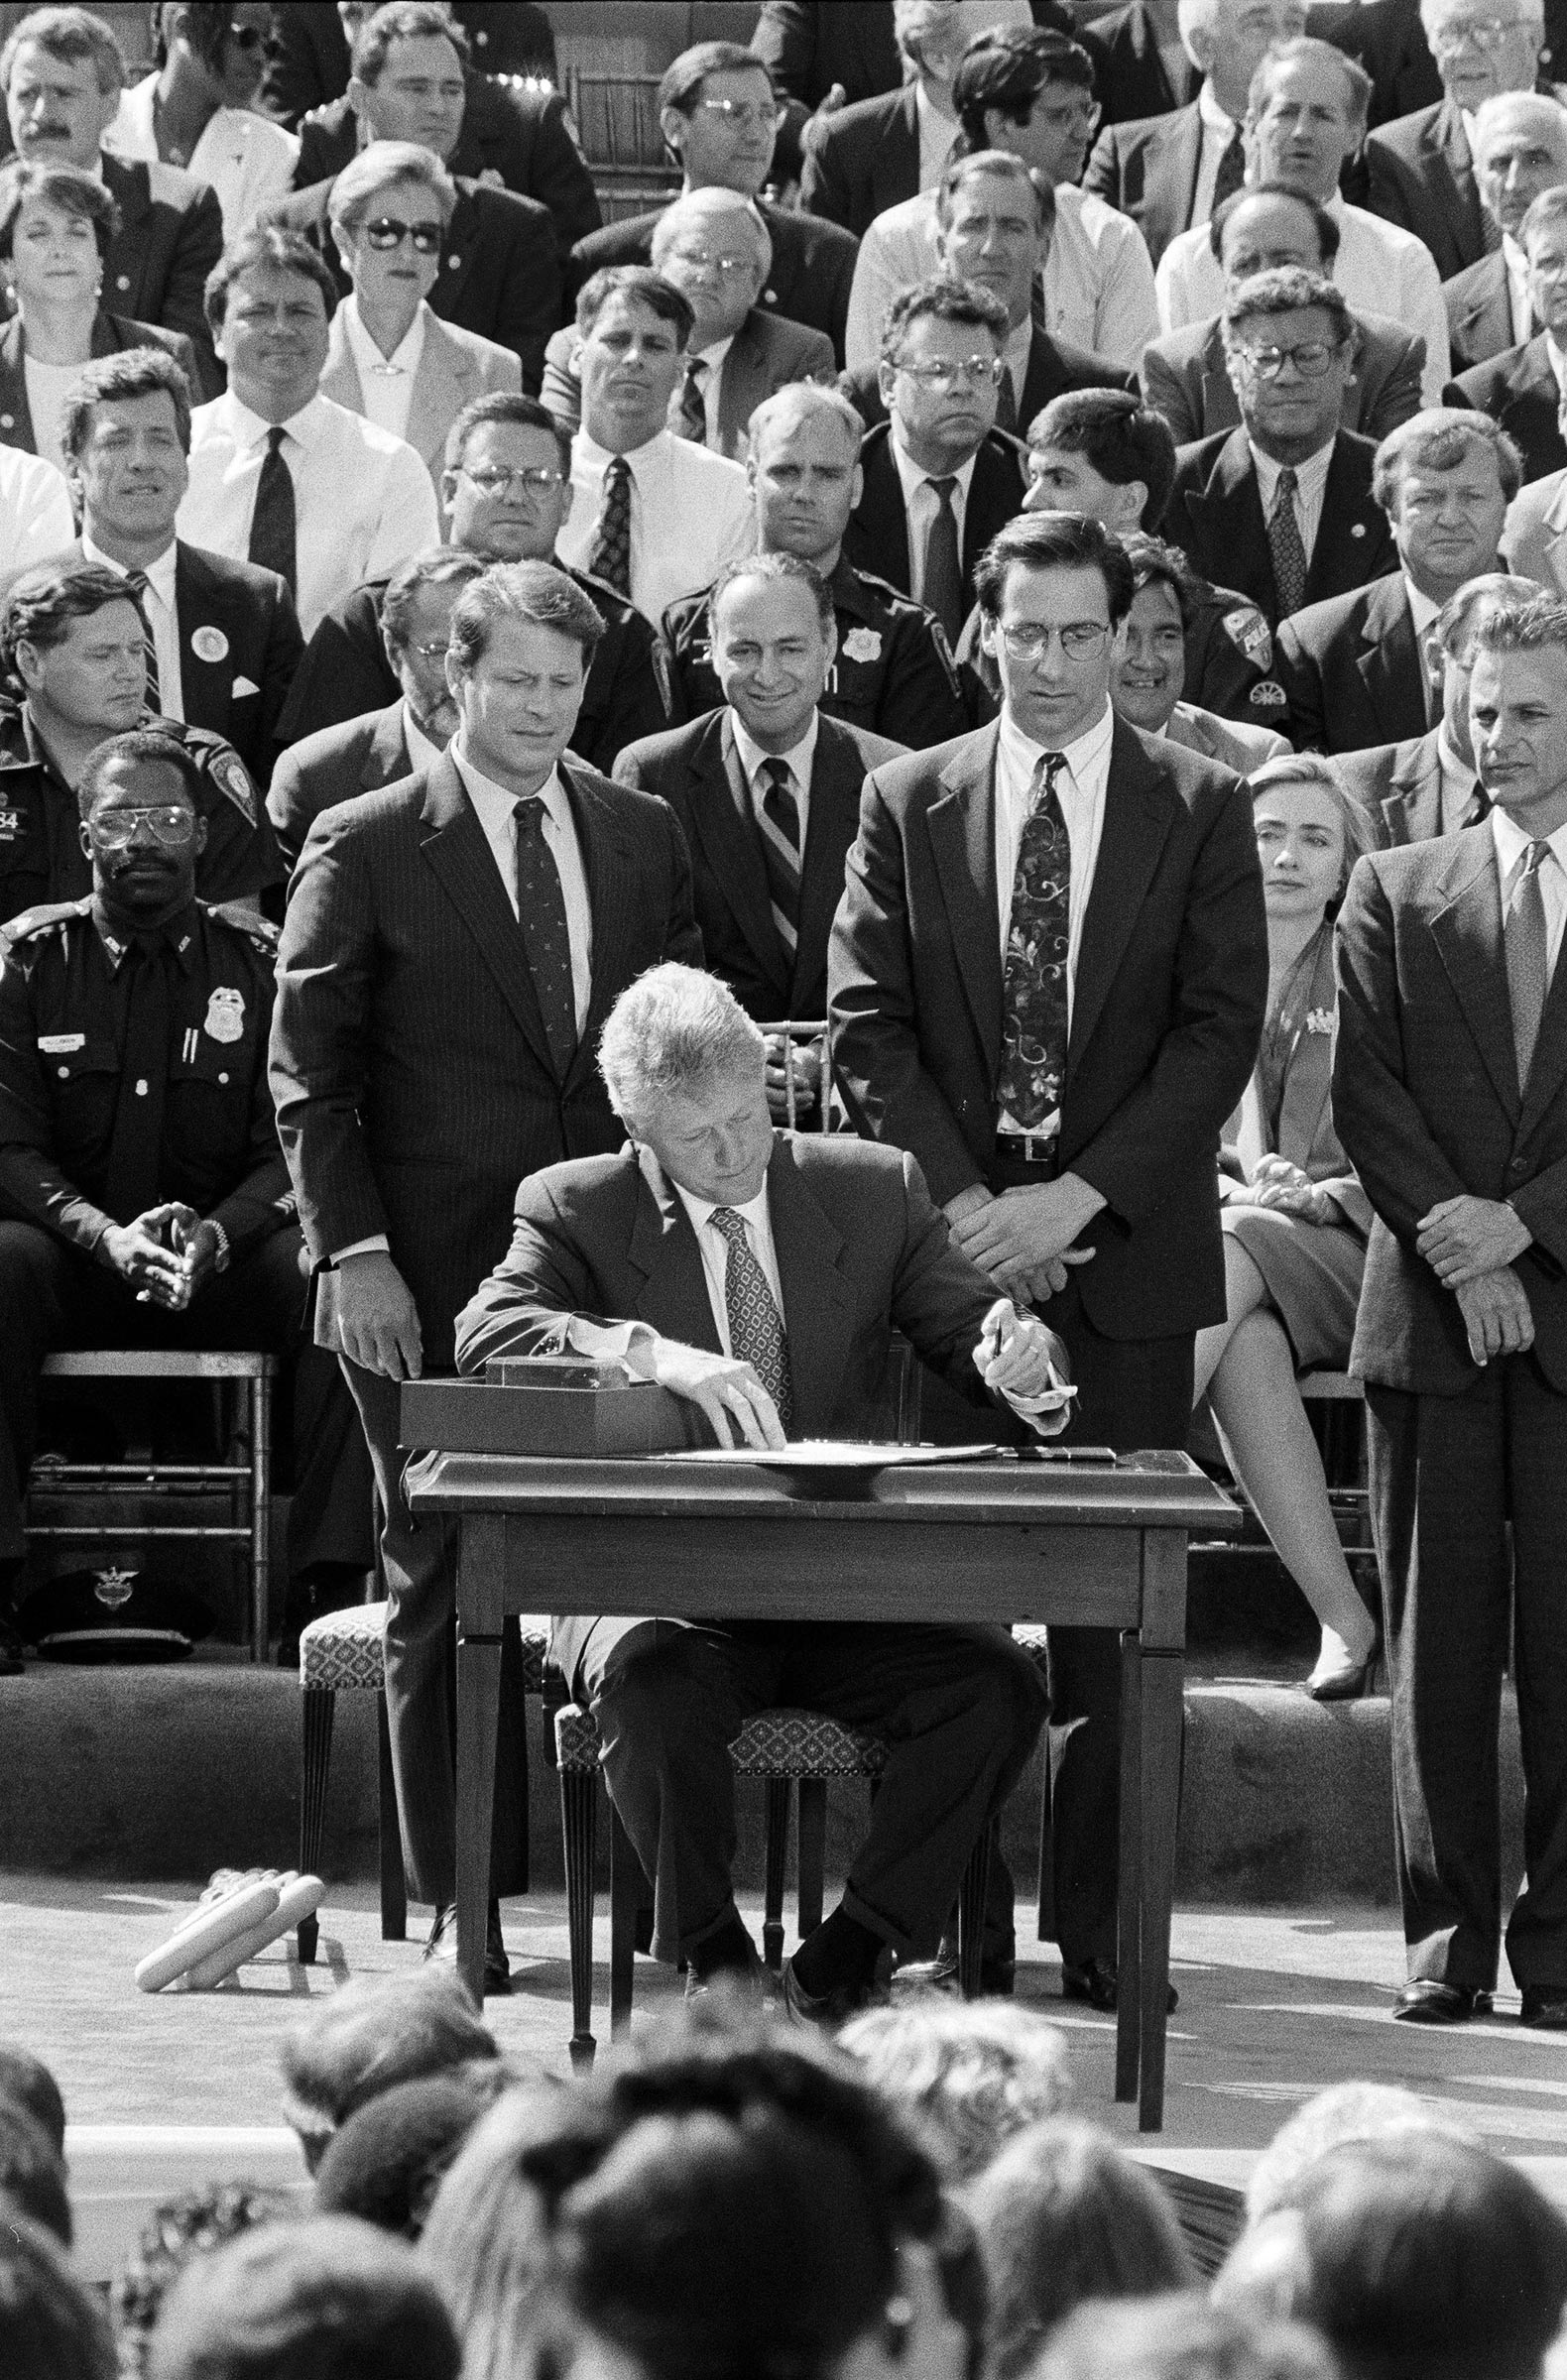 President Clinton signs the Violent Crime Control and Law Enforcement Act at the White House on Sept. 13, 1994.